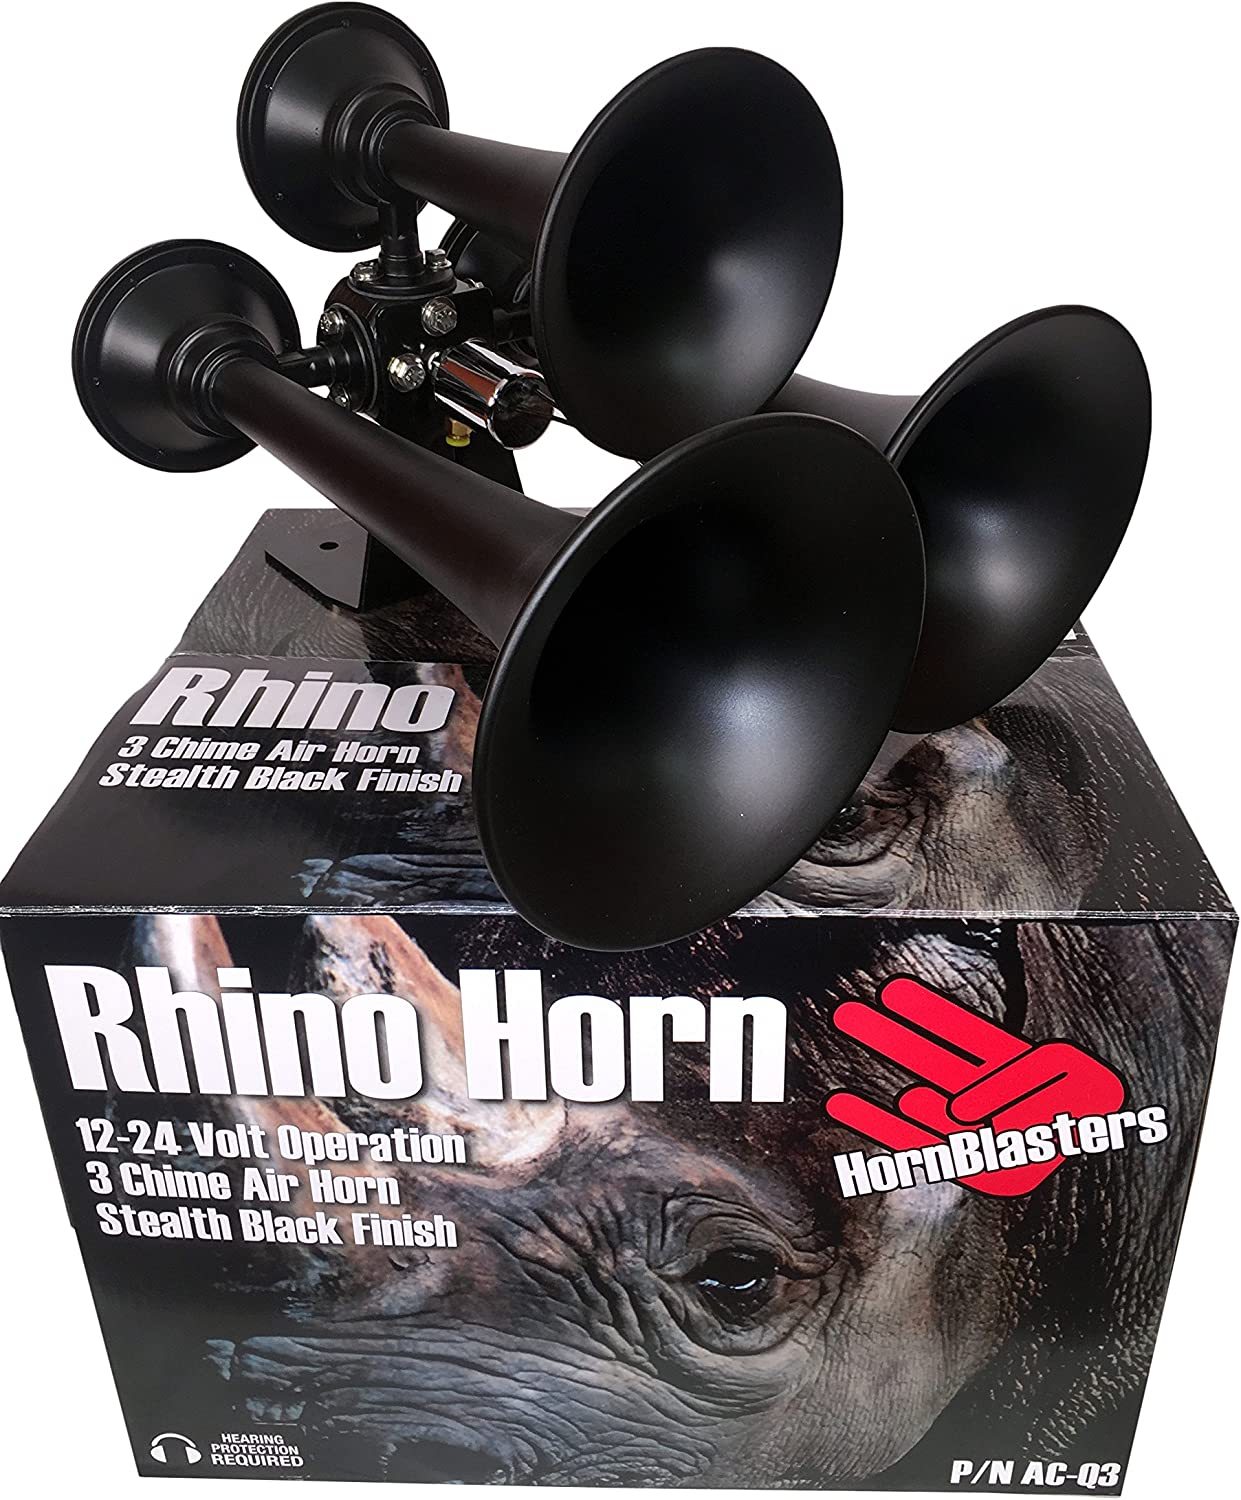 3 Trumpet Rhino and 3 Liter Air Source Unit Combo Air Horn Kit HornBlasters Crazy Loud Small Compact 2 Trumpet Spocker